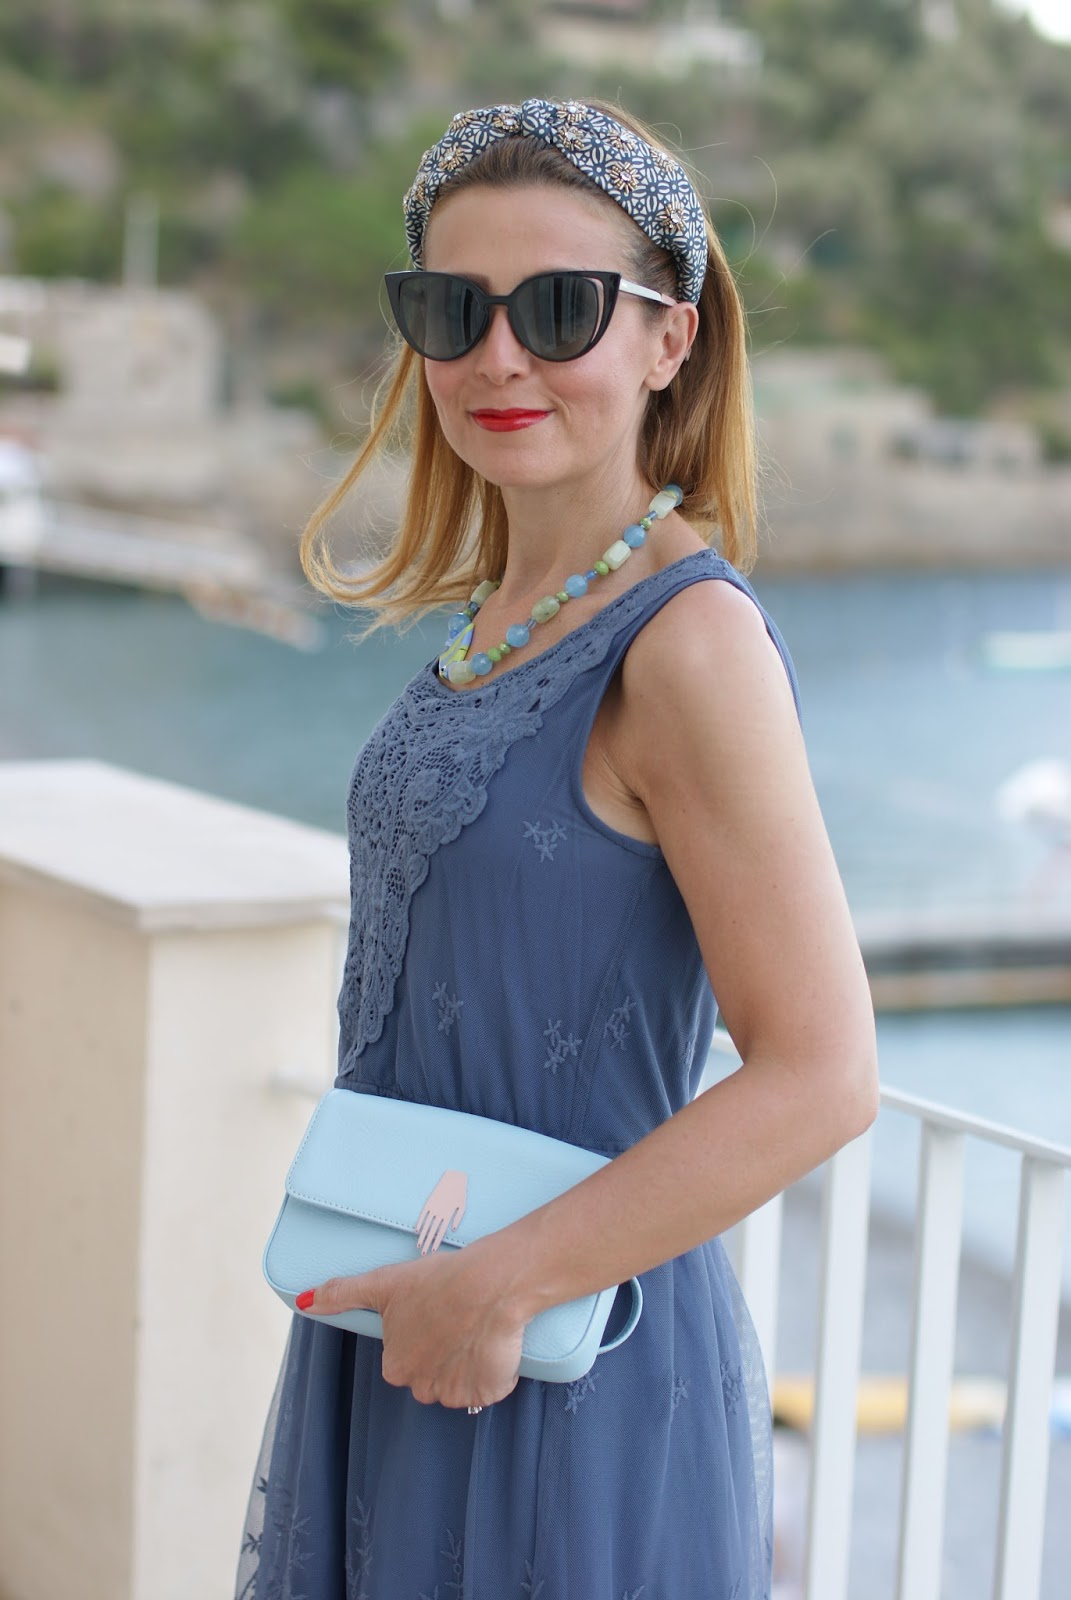 Mismash Bunaka dress and Fendi cat eye sunglasses on Fashion and Cookies fashion blog, fashion blogger style